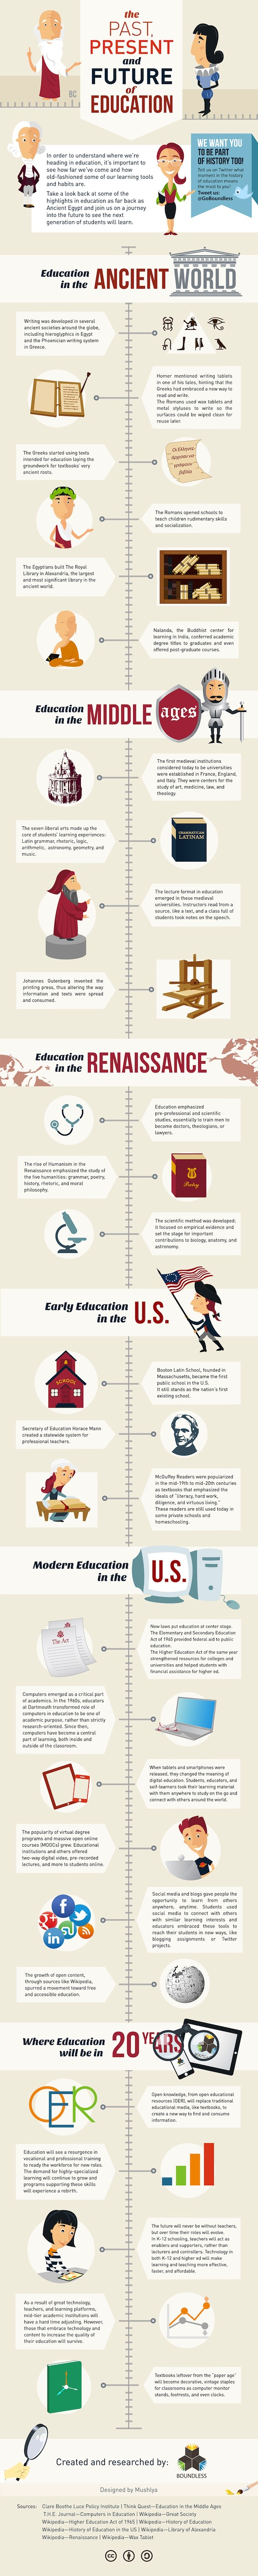 history_of_education_infographic.jpg